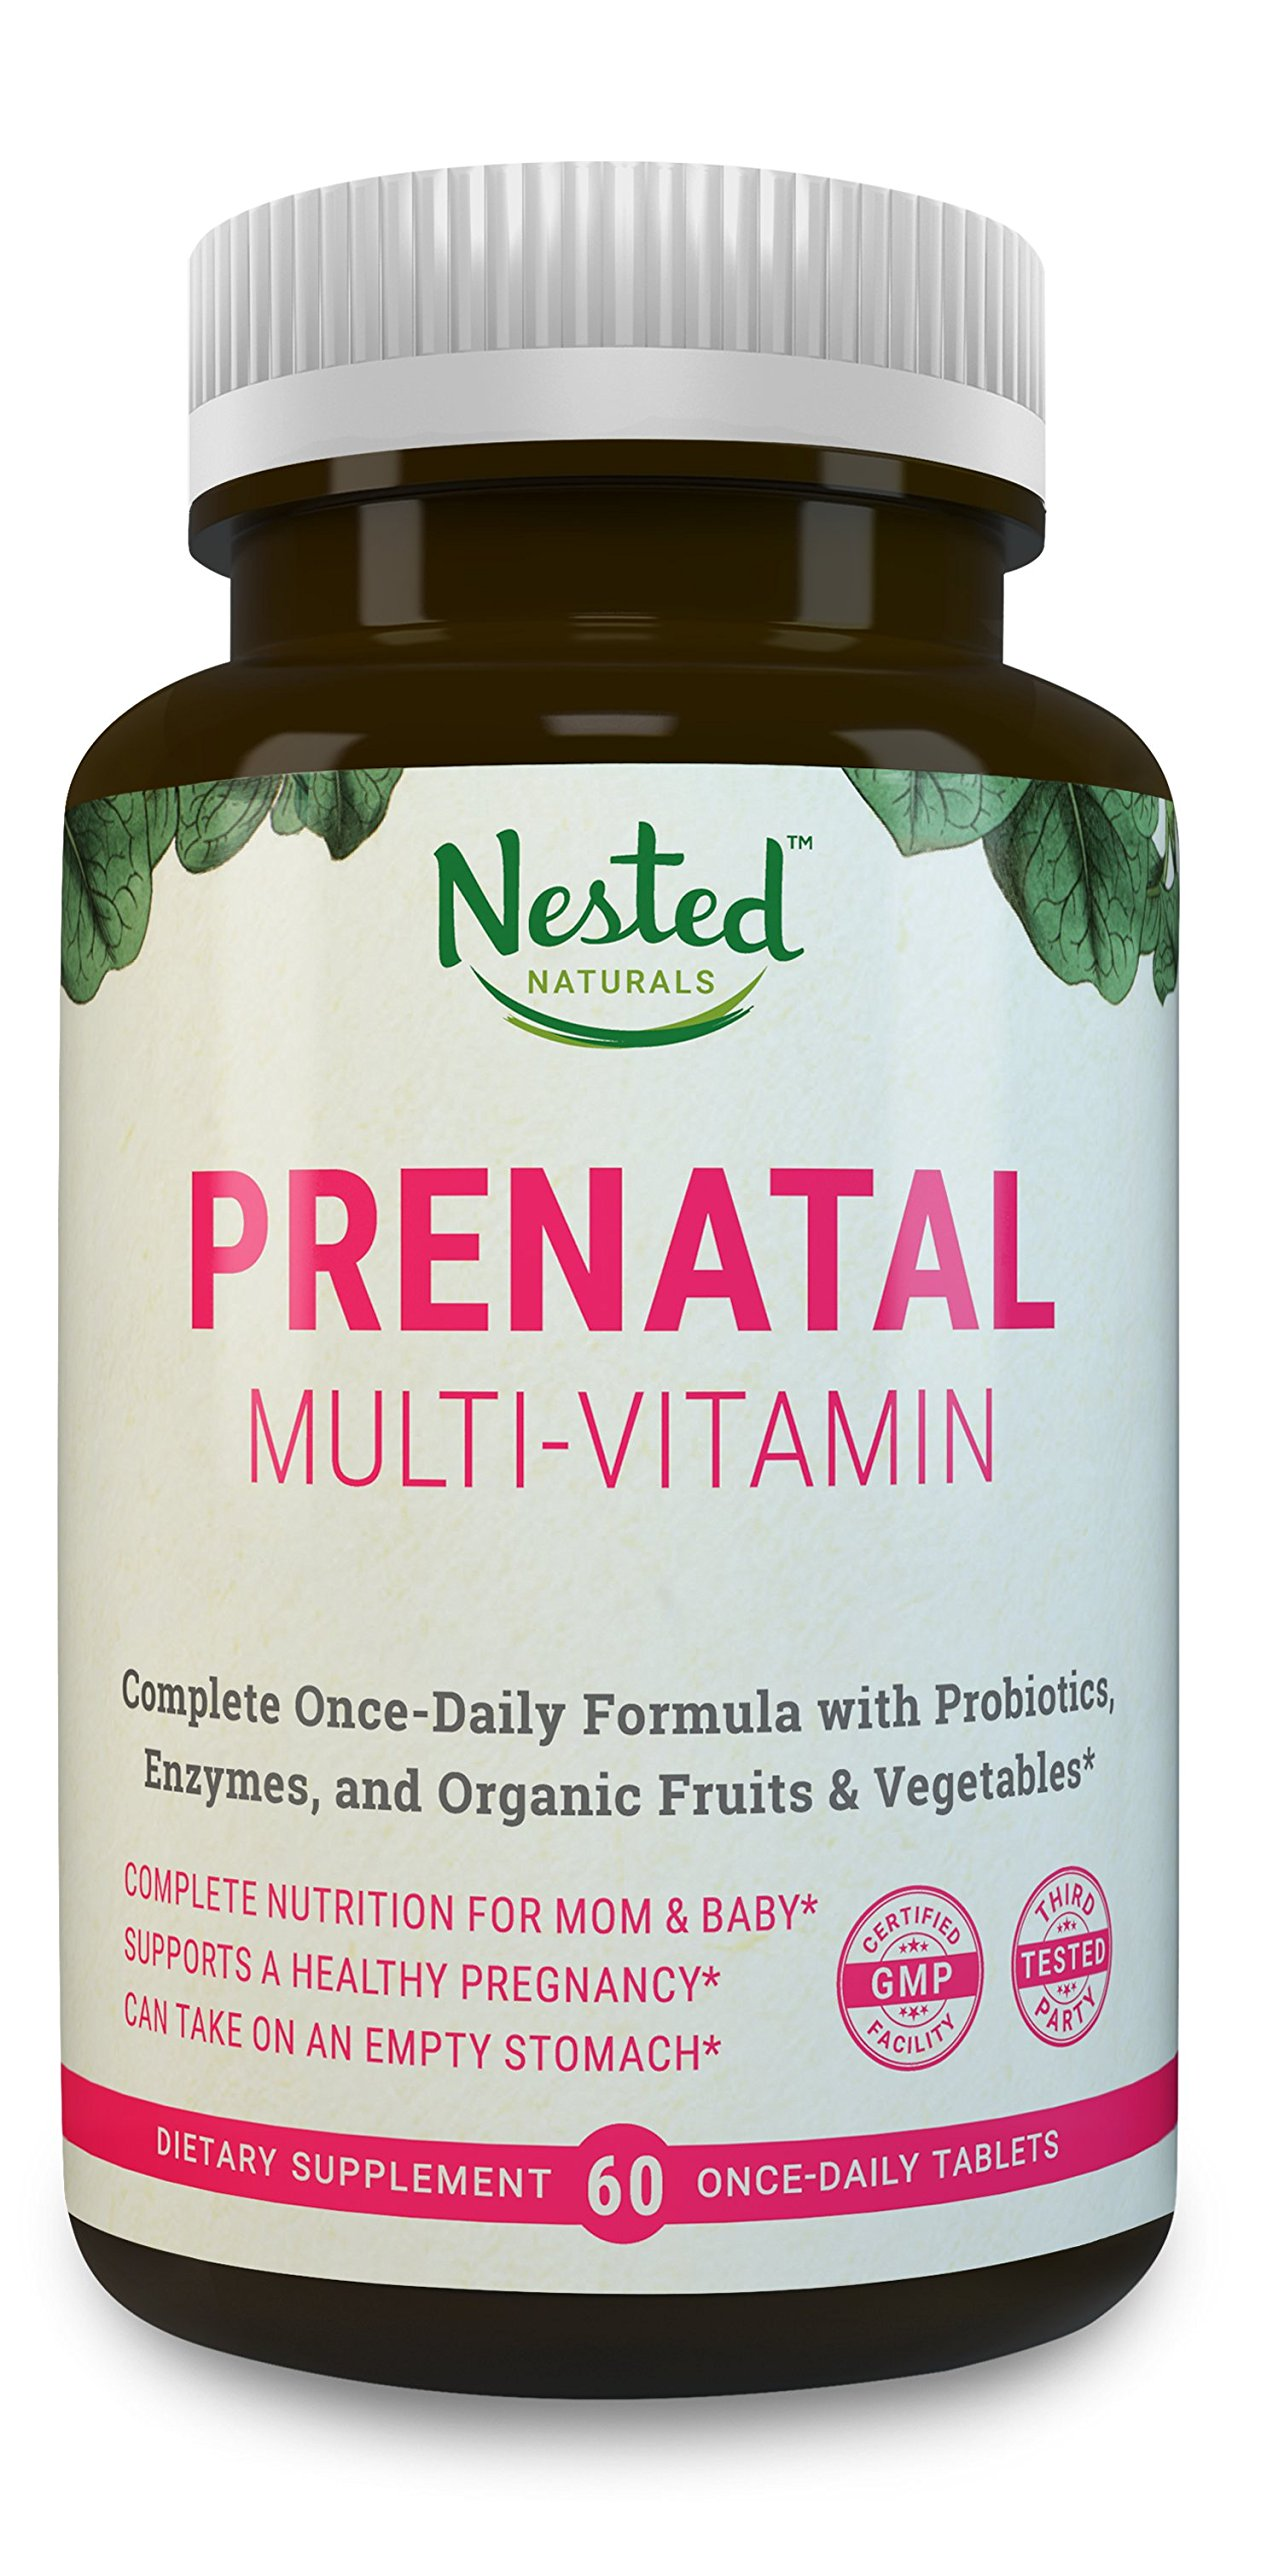 PRENATAL MULTIVITAMIN | 60 One a Day Vegetarian Pills | With L-Methylfolate, Probiotics, Calcium, Organic Superfoods, and Choline | All Natural Vitamins for Women | Pregnancy Multi Vitamin Supplements